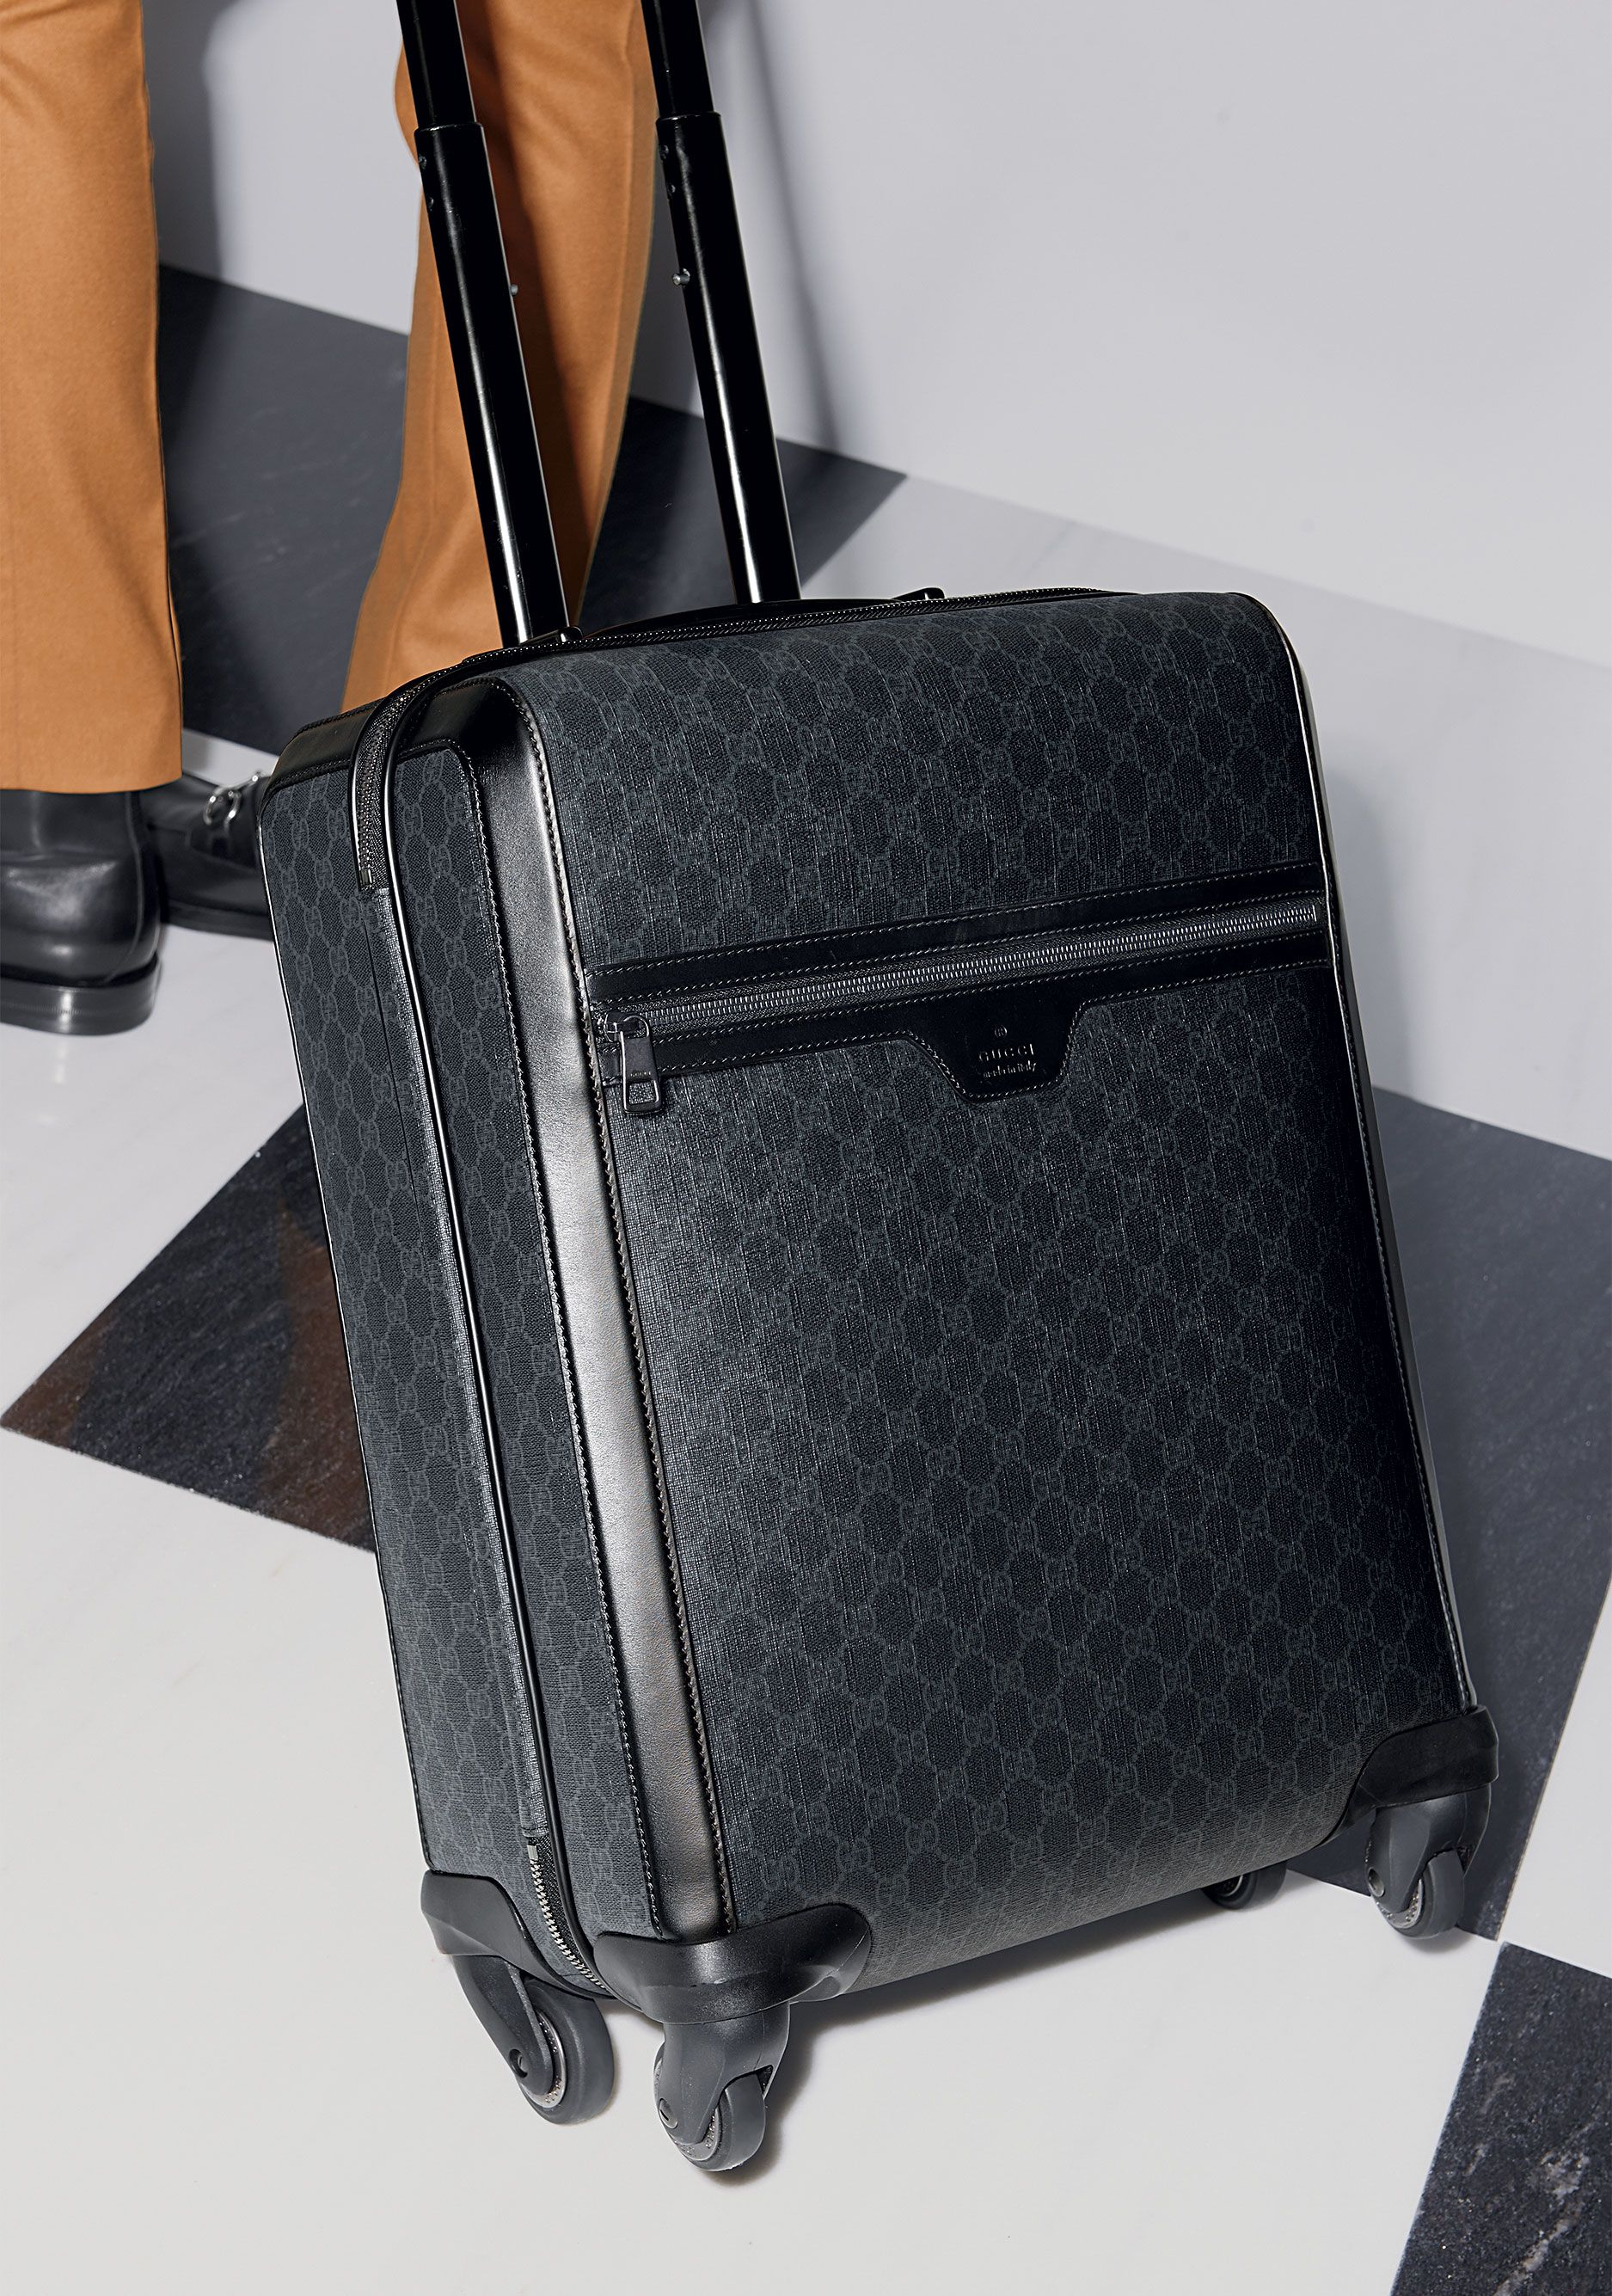 Gucci Pre-Fall 2014: GG Supreme Canvas Wheeled Carry-On Suitcase